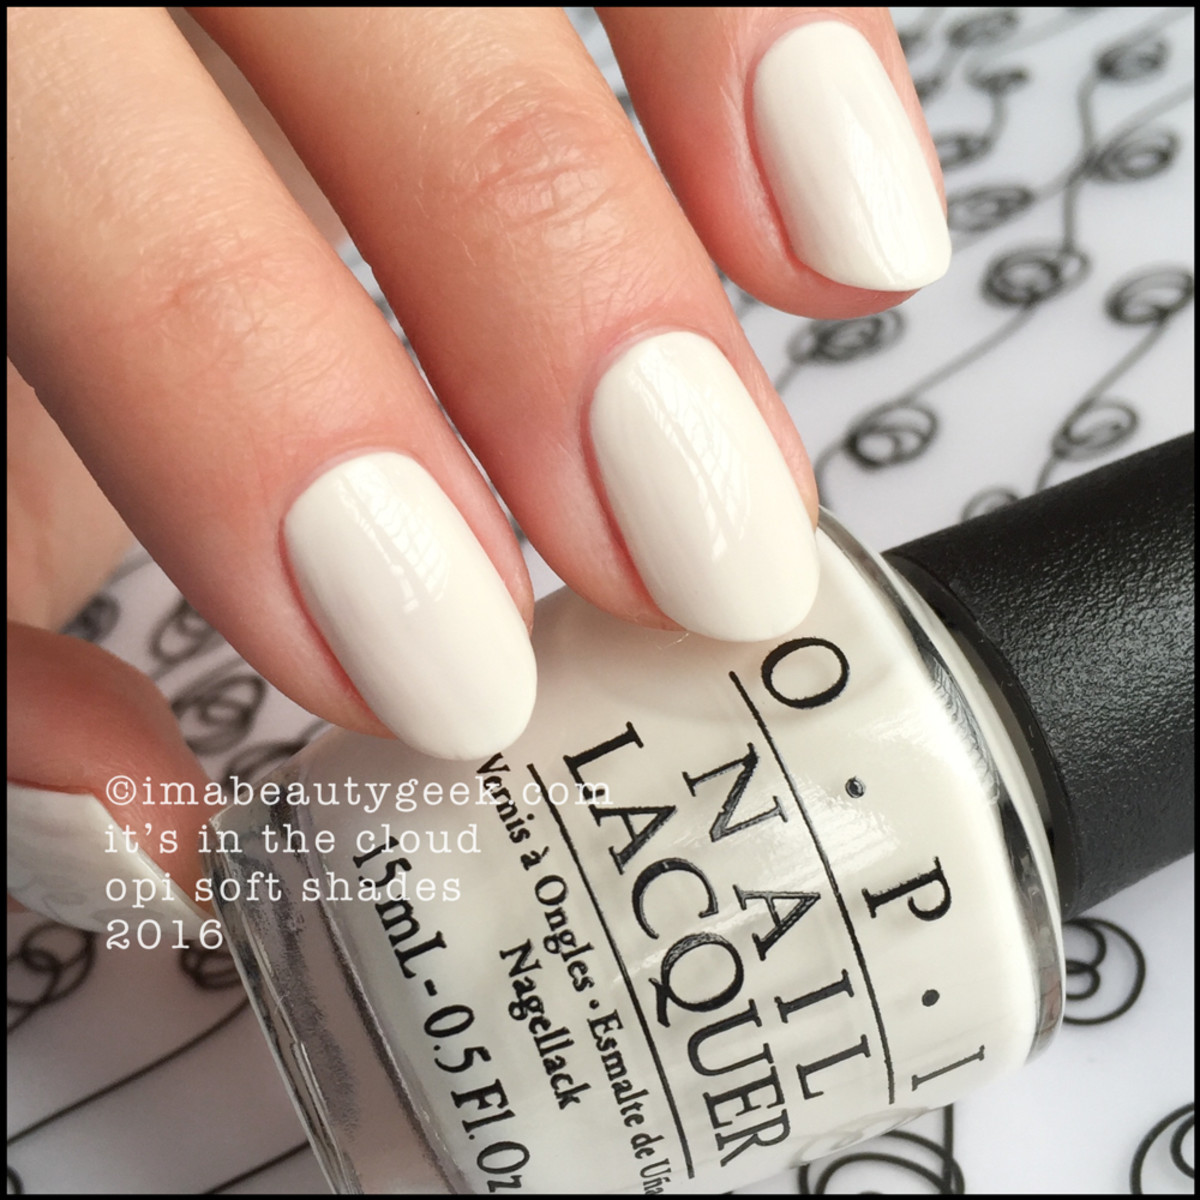 OPI Nail Lacquer, OPI Soft Shades Pastel Collection, One Chic Chick T73 0.5 Fluid Ounce OPI Nail Lacquer, OPI Soft Shades Pastel Collection, One Chic Chick T73 0.5 Fluid Ounce new images